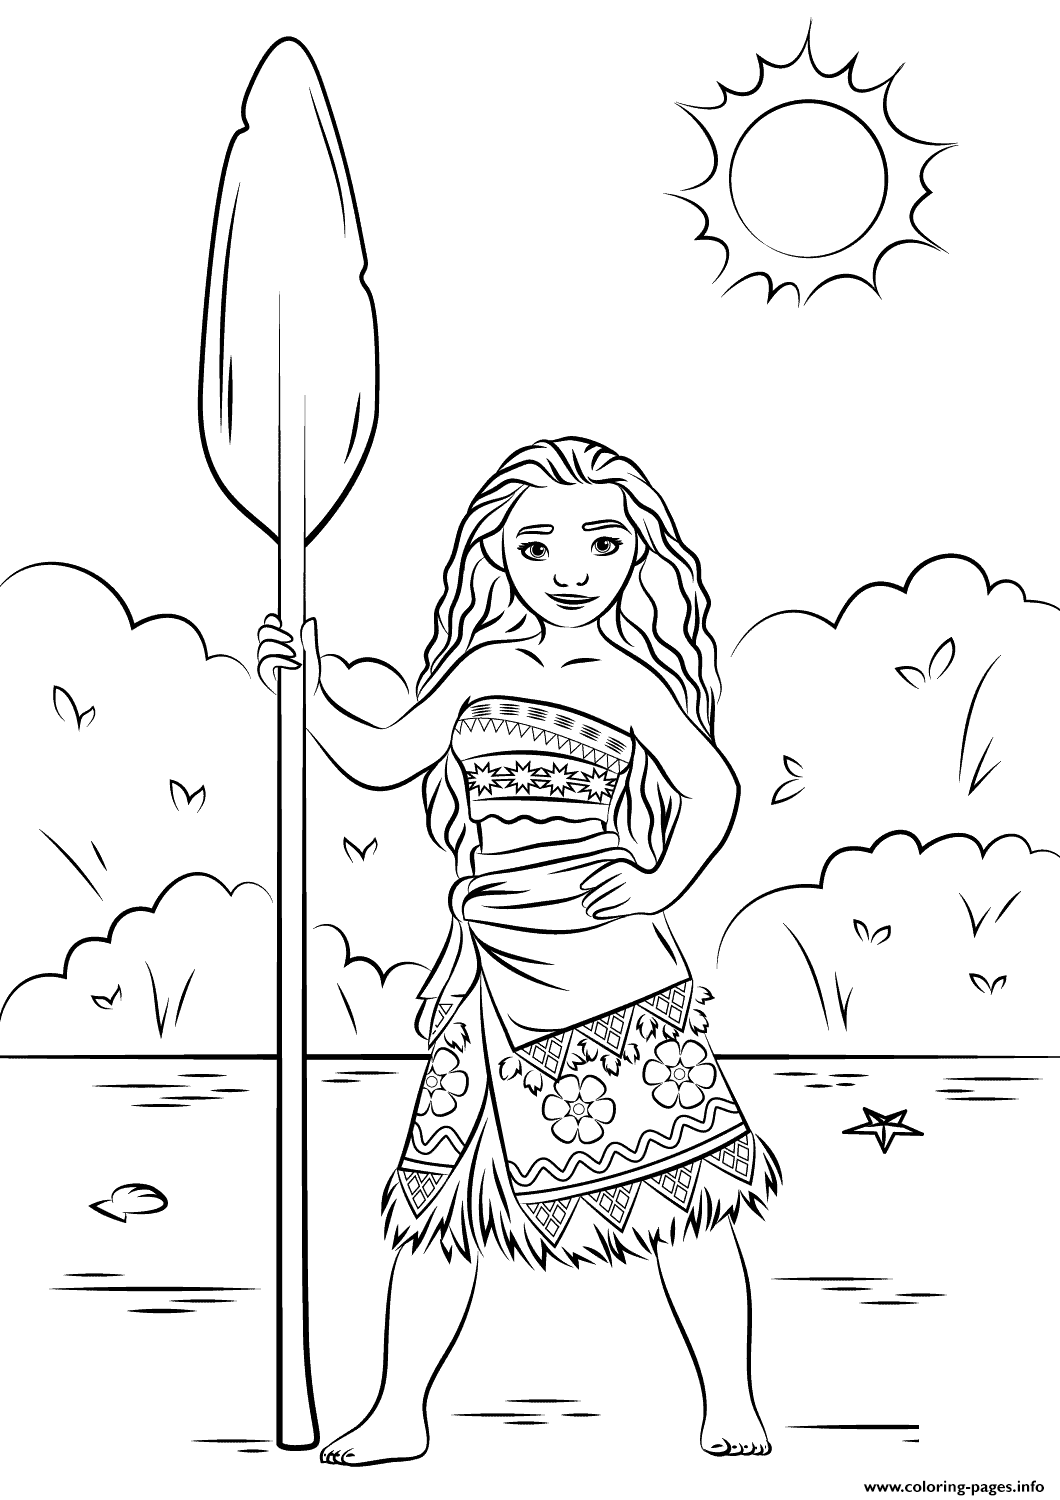 Pr princess coloring sheet - Print Princess Moana Disney Coloring Pages